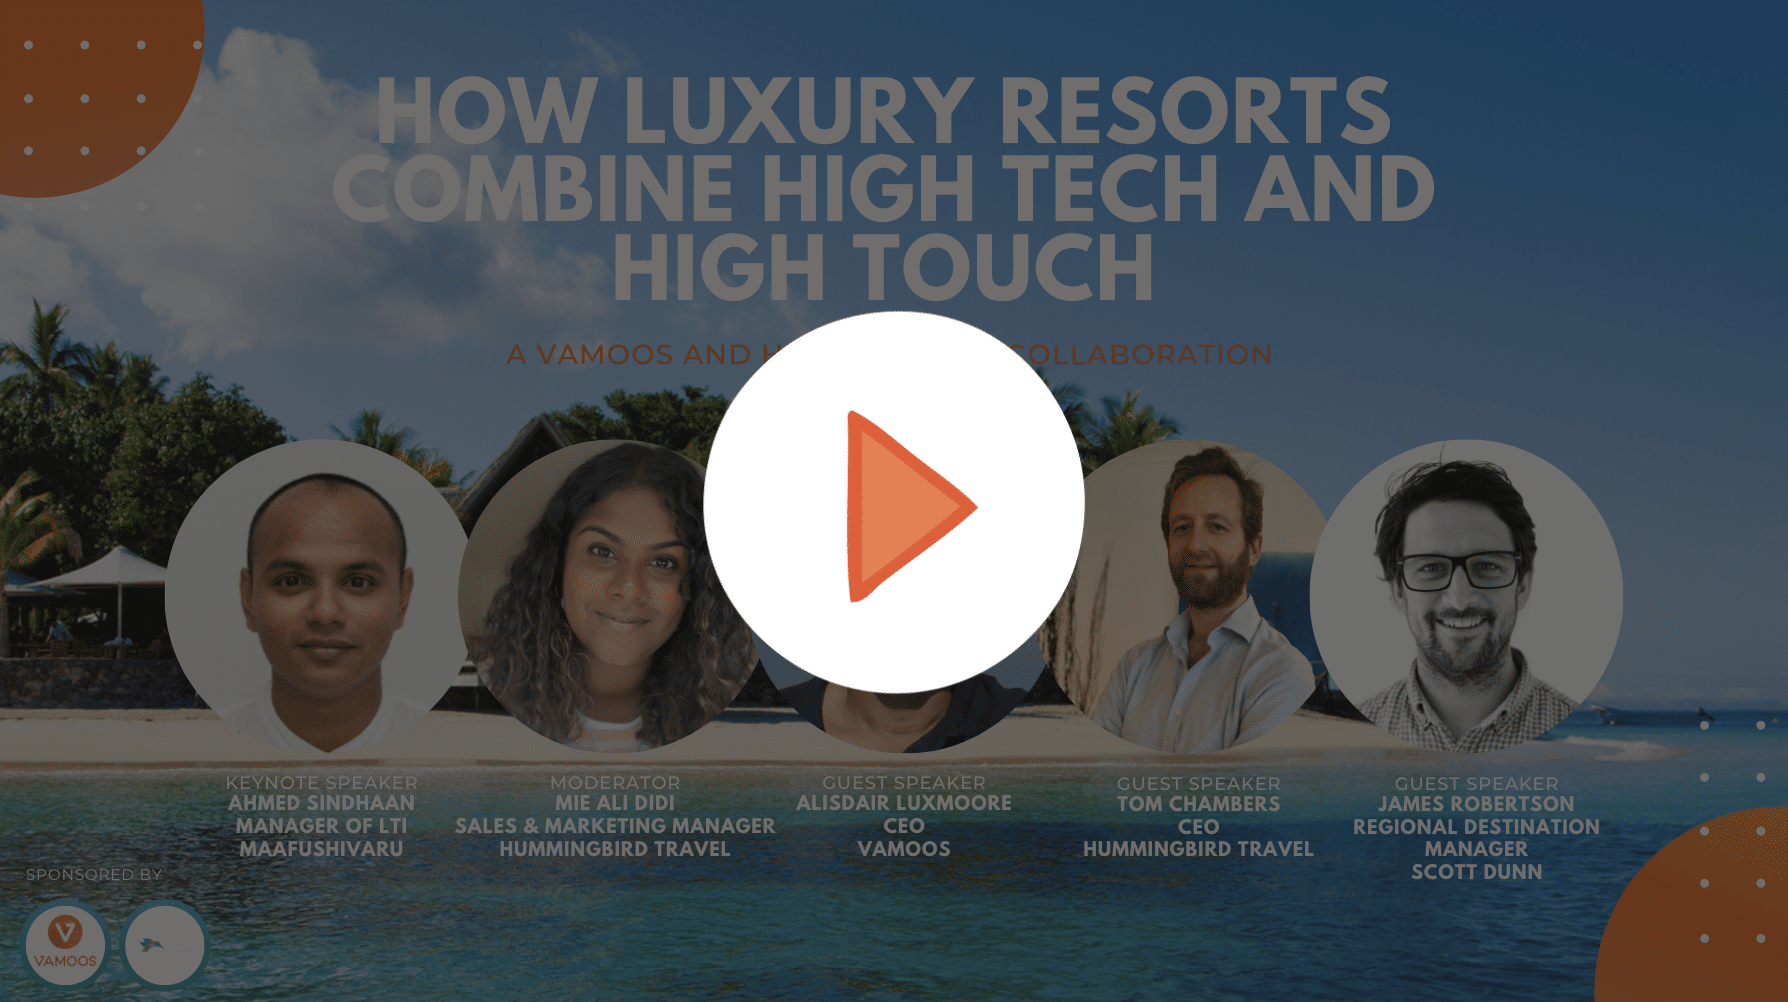 [VIDEO] High Tech is Here to Stay in Luxury Travel